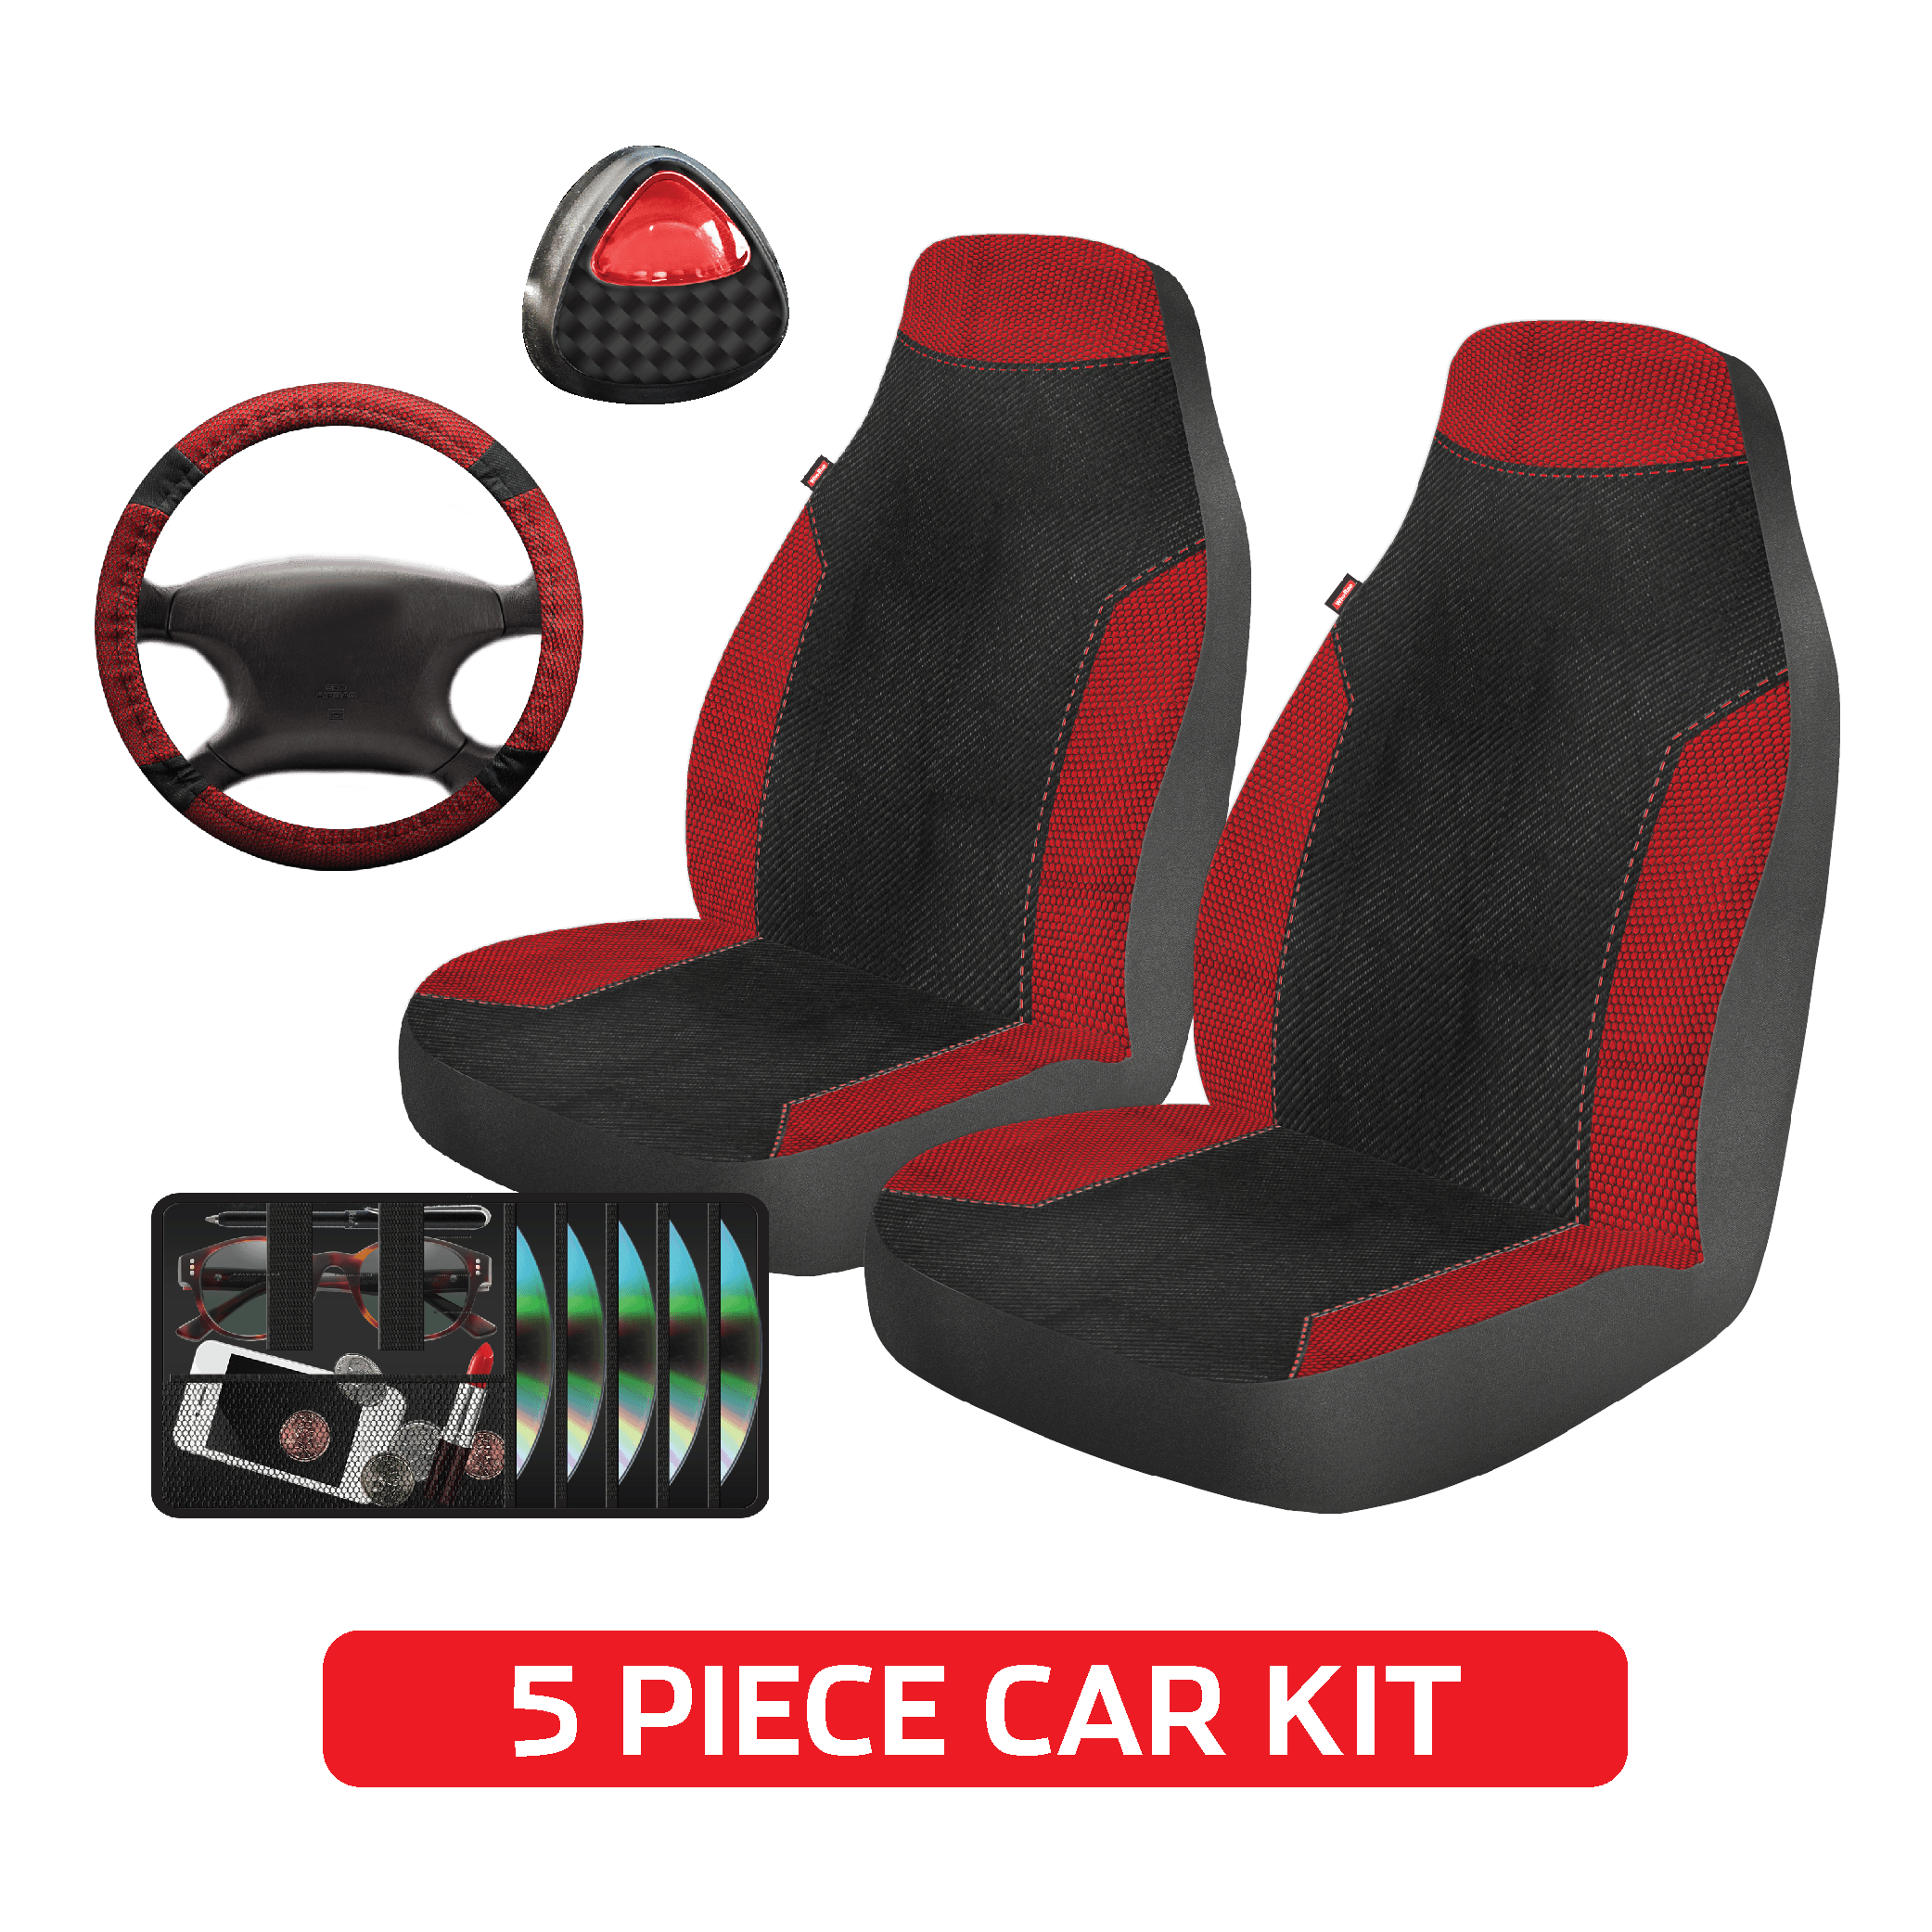 Auto Drive Universal 5-Piece Seat Cover and Steering Wheel Kit